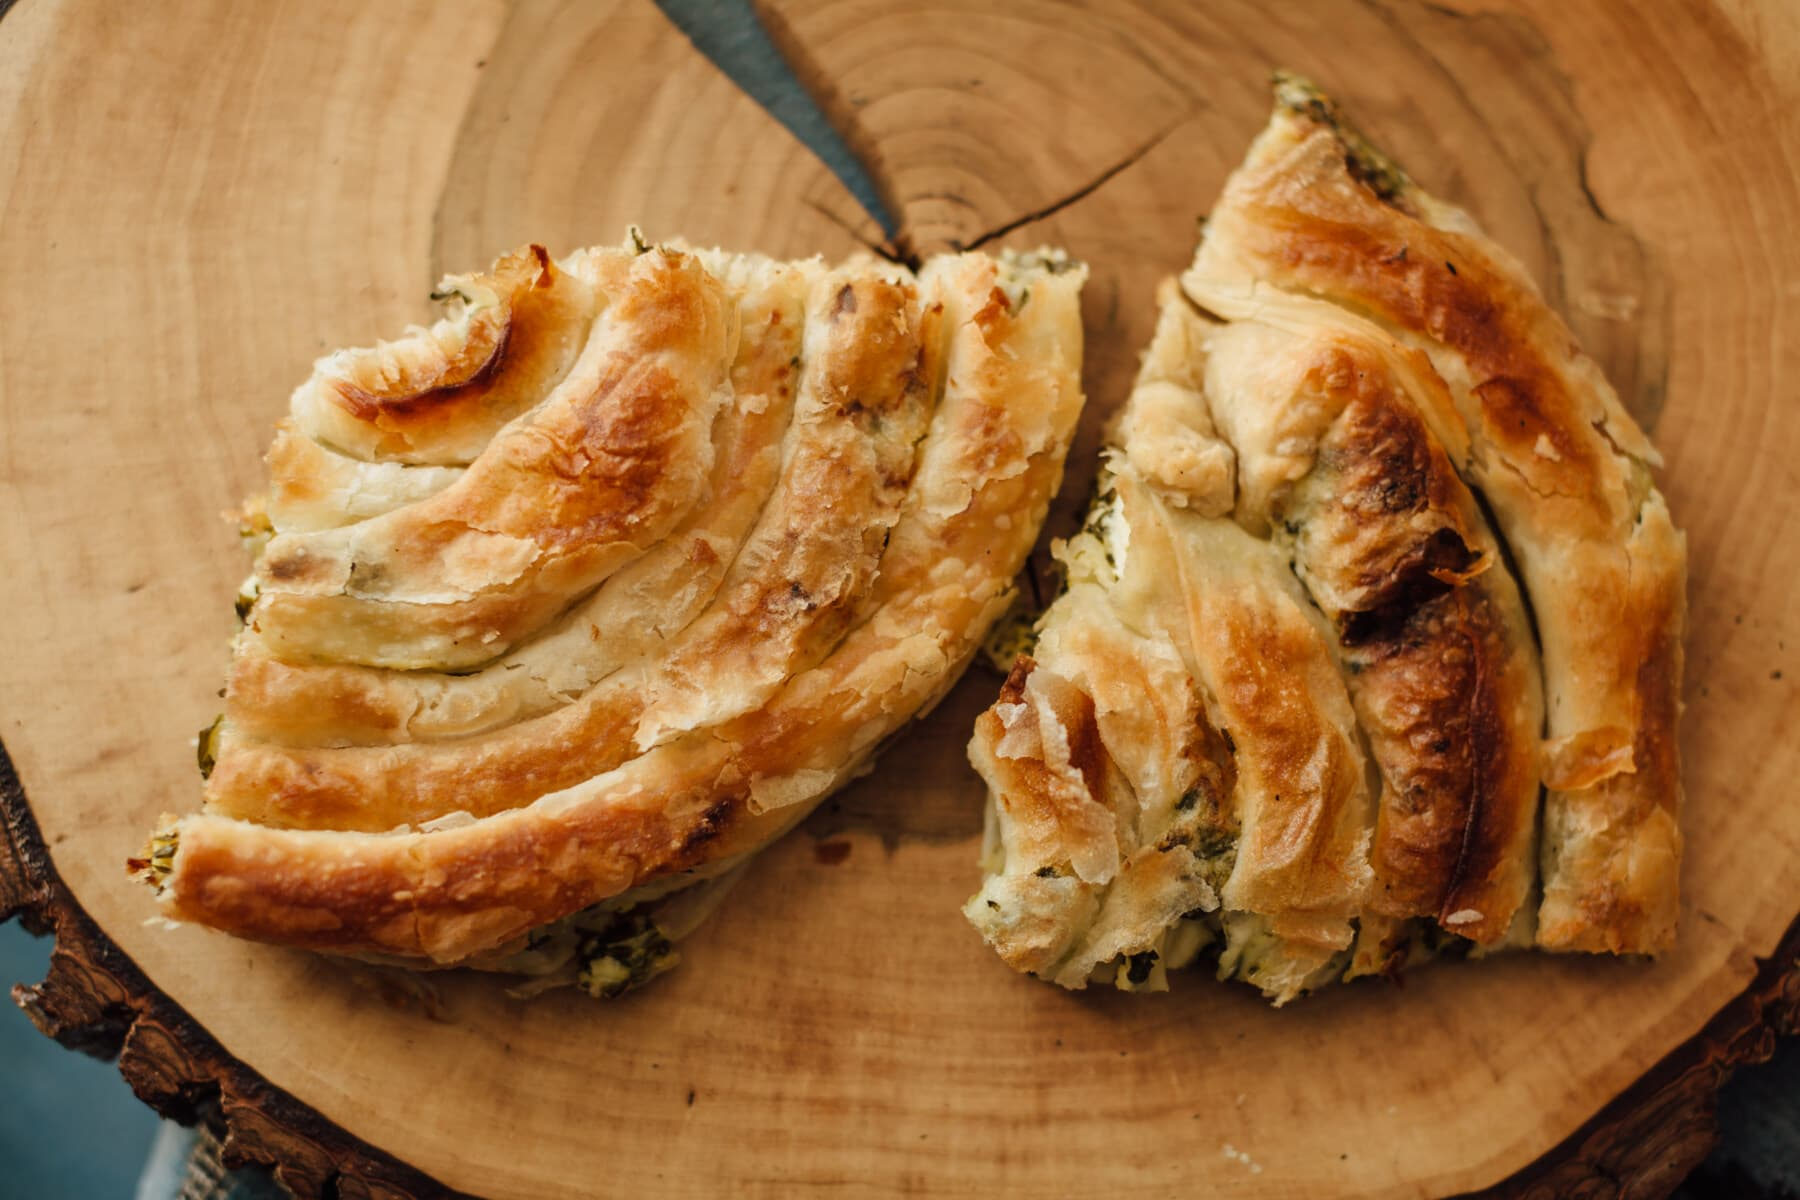 pie crust, pies, homemade, baked goods, slice, culinary, food, meal, dish, pastry